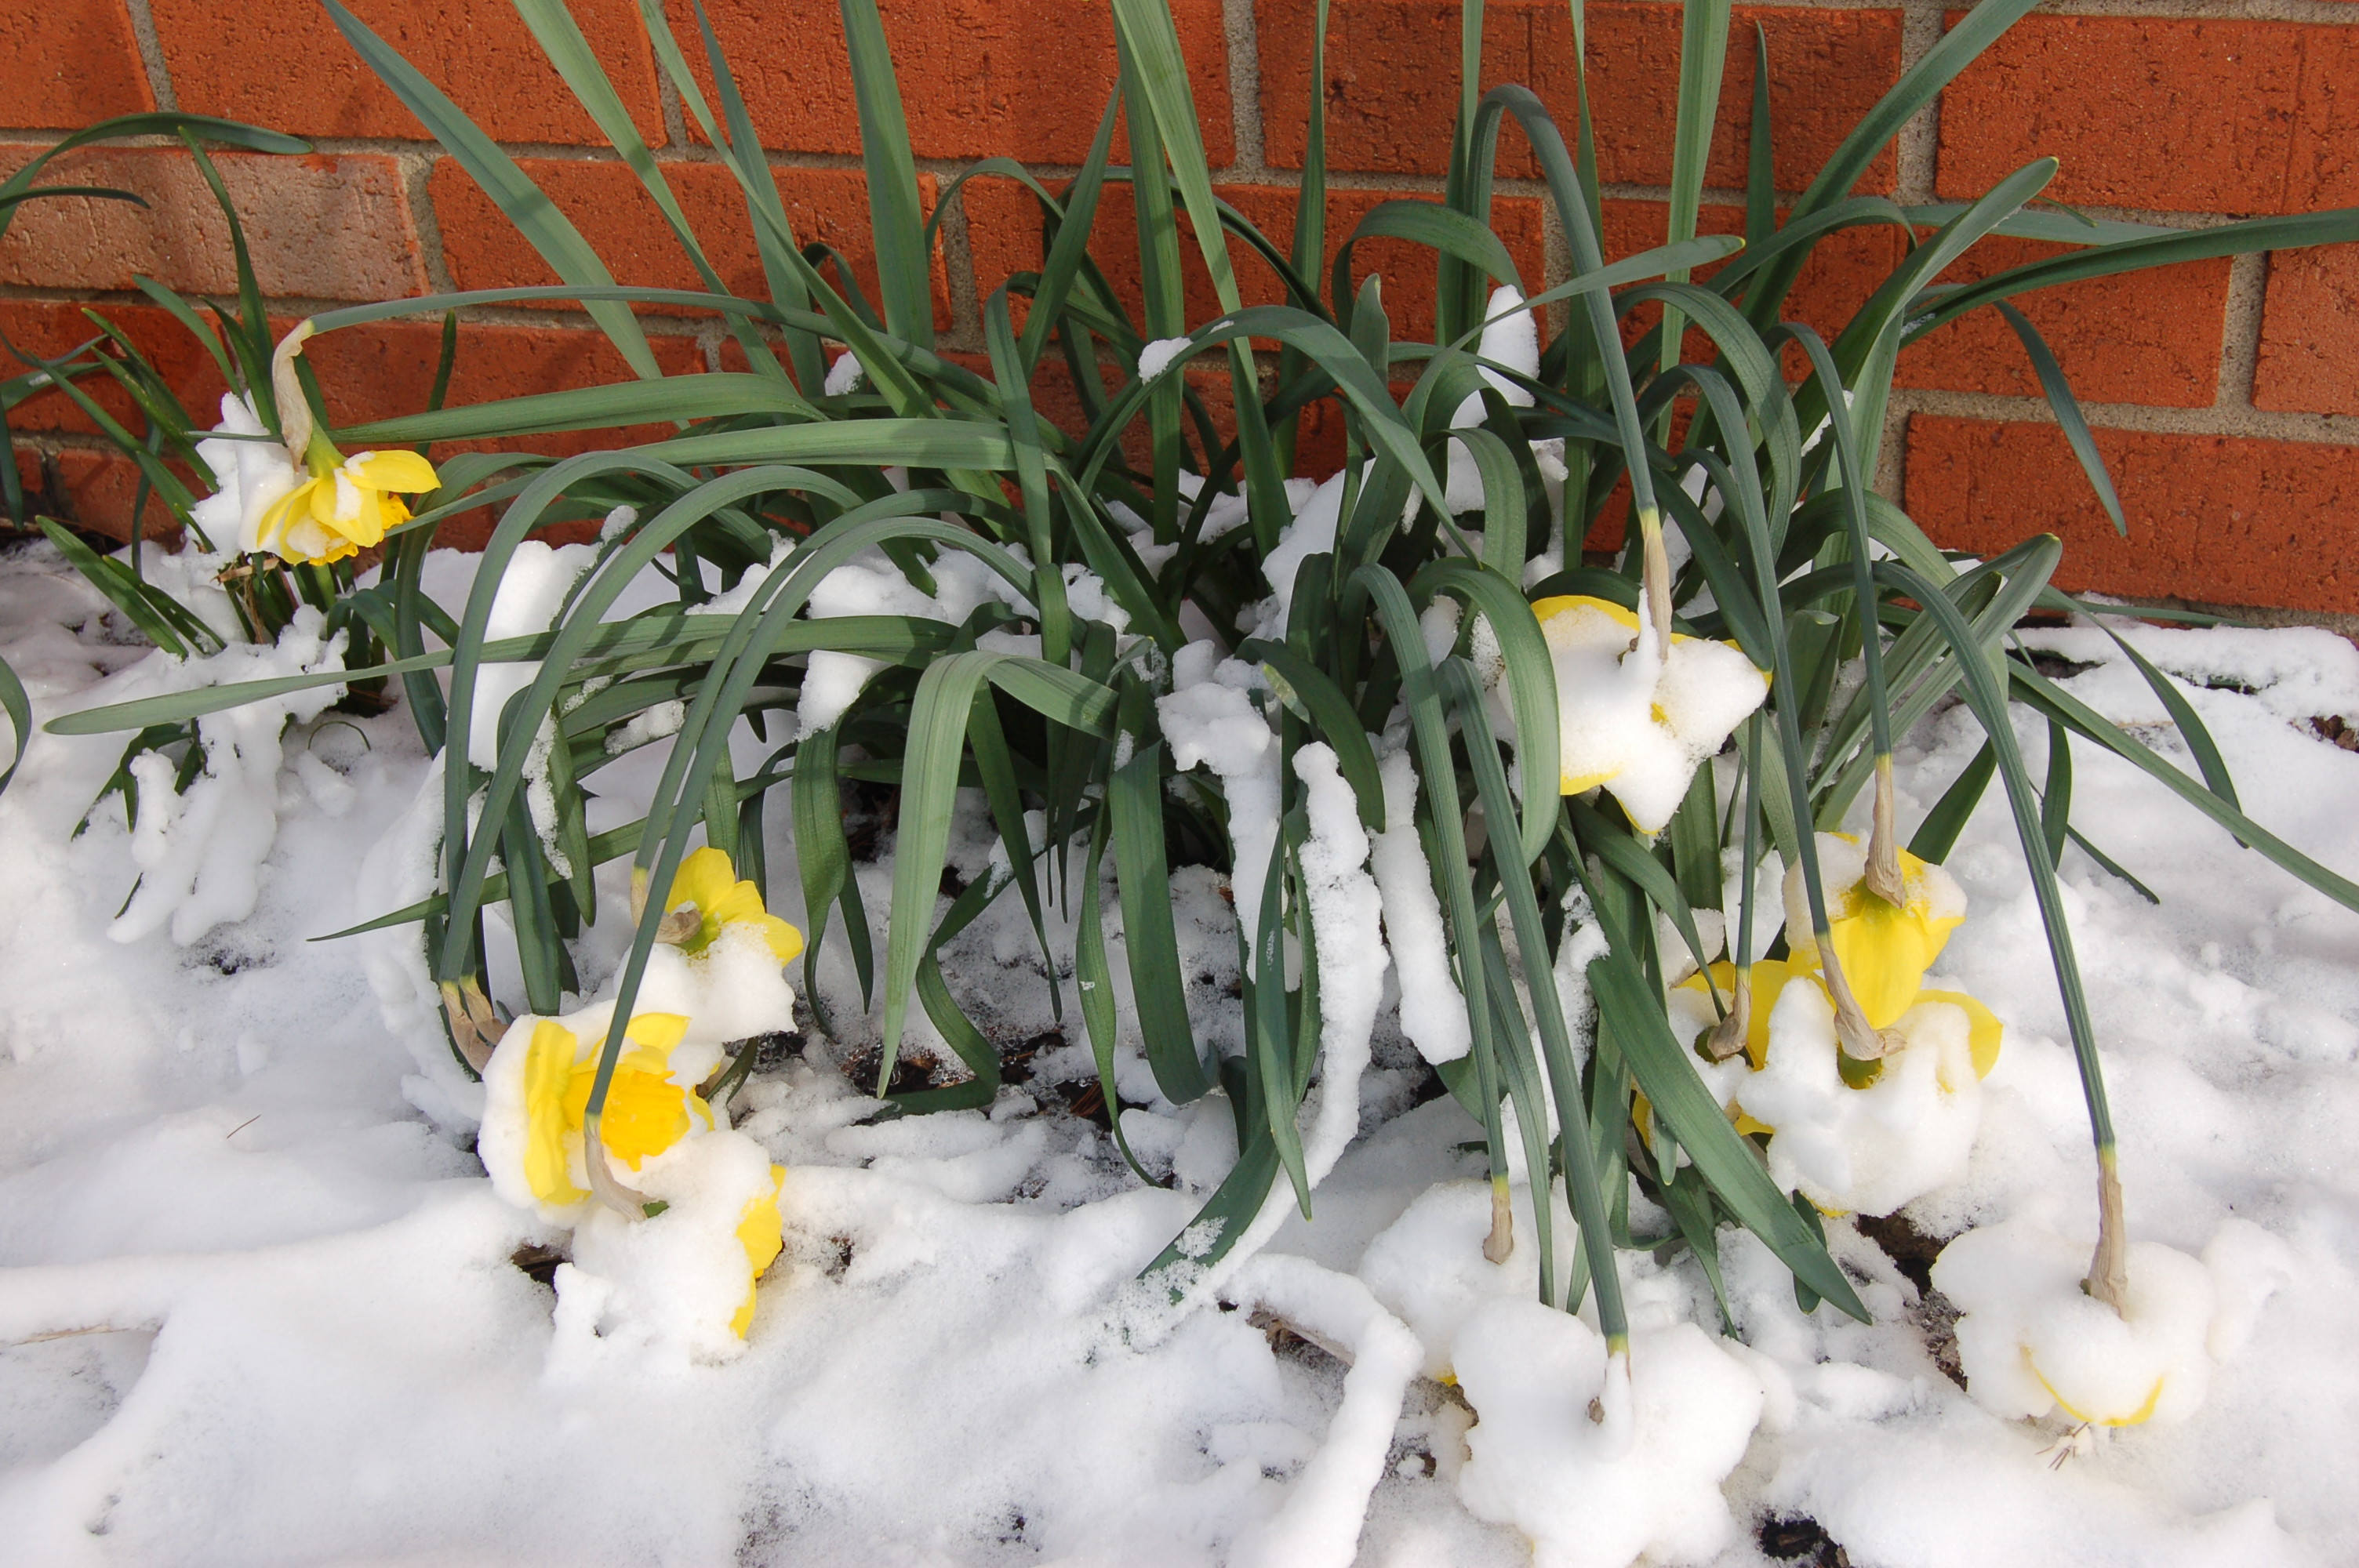 Drooping daffodils by Bruce Stambaugh